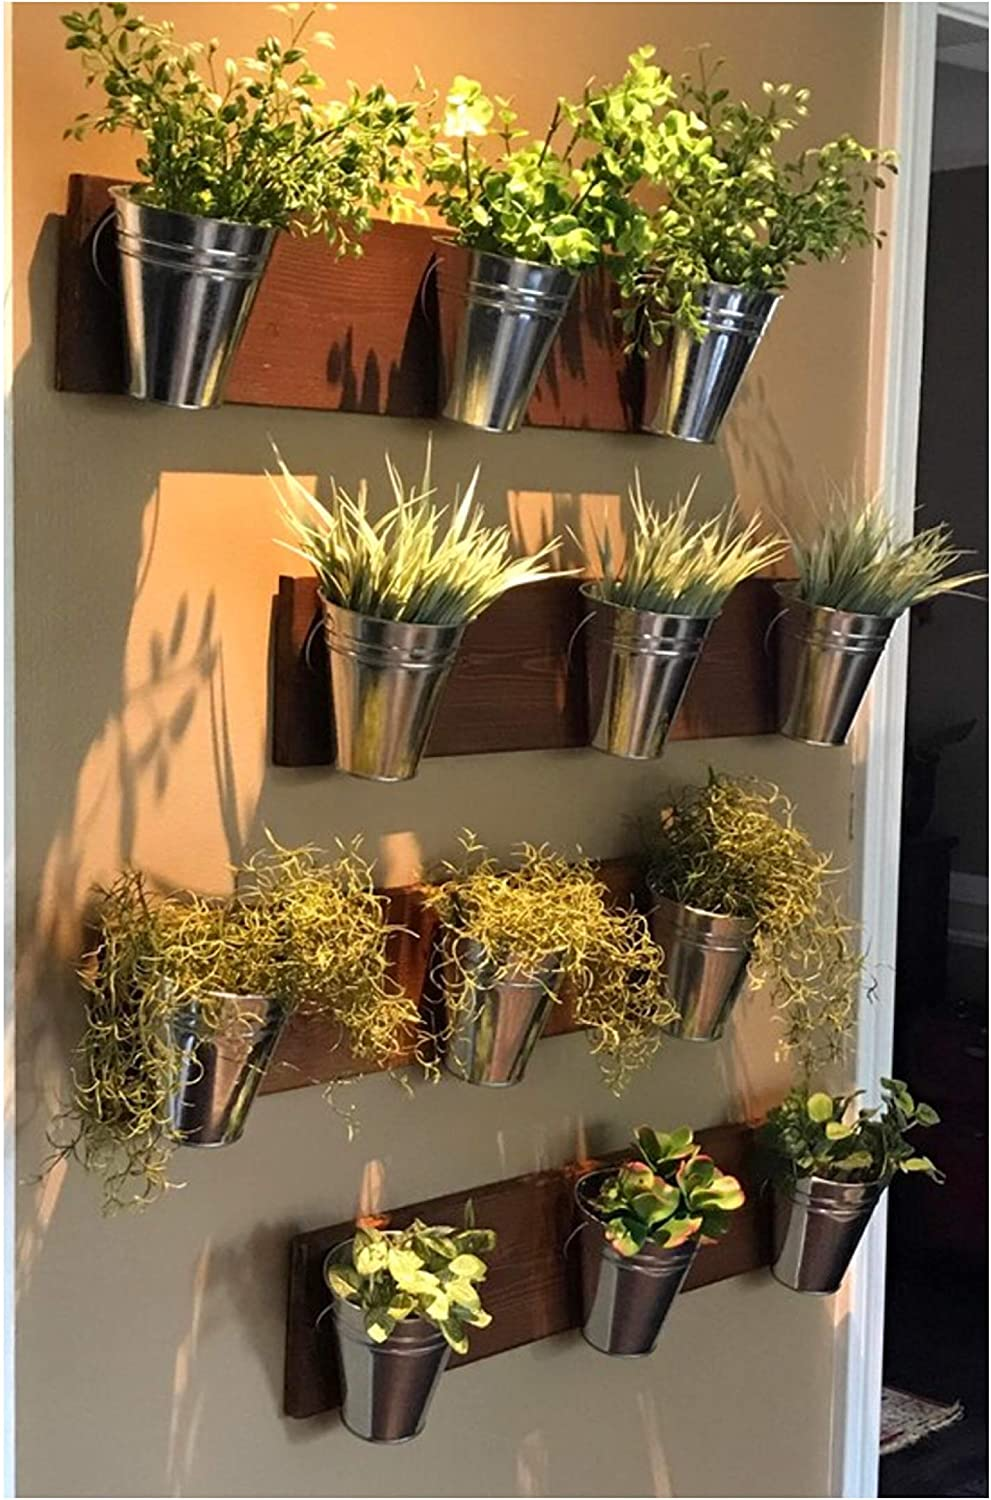 Home Oniship Art Deco Indoor Limited price Limited price sale Wall Planter -Wood Horizontal Grain